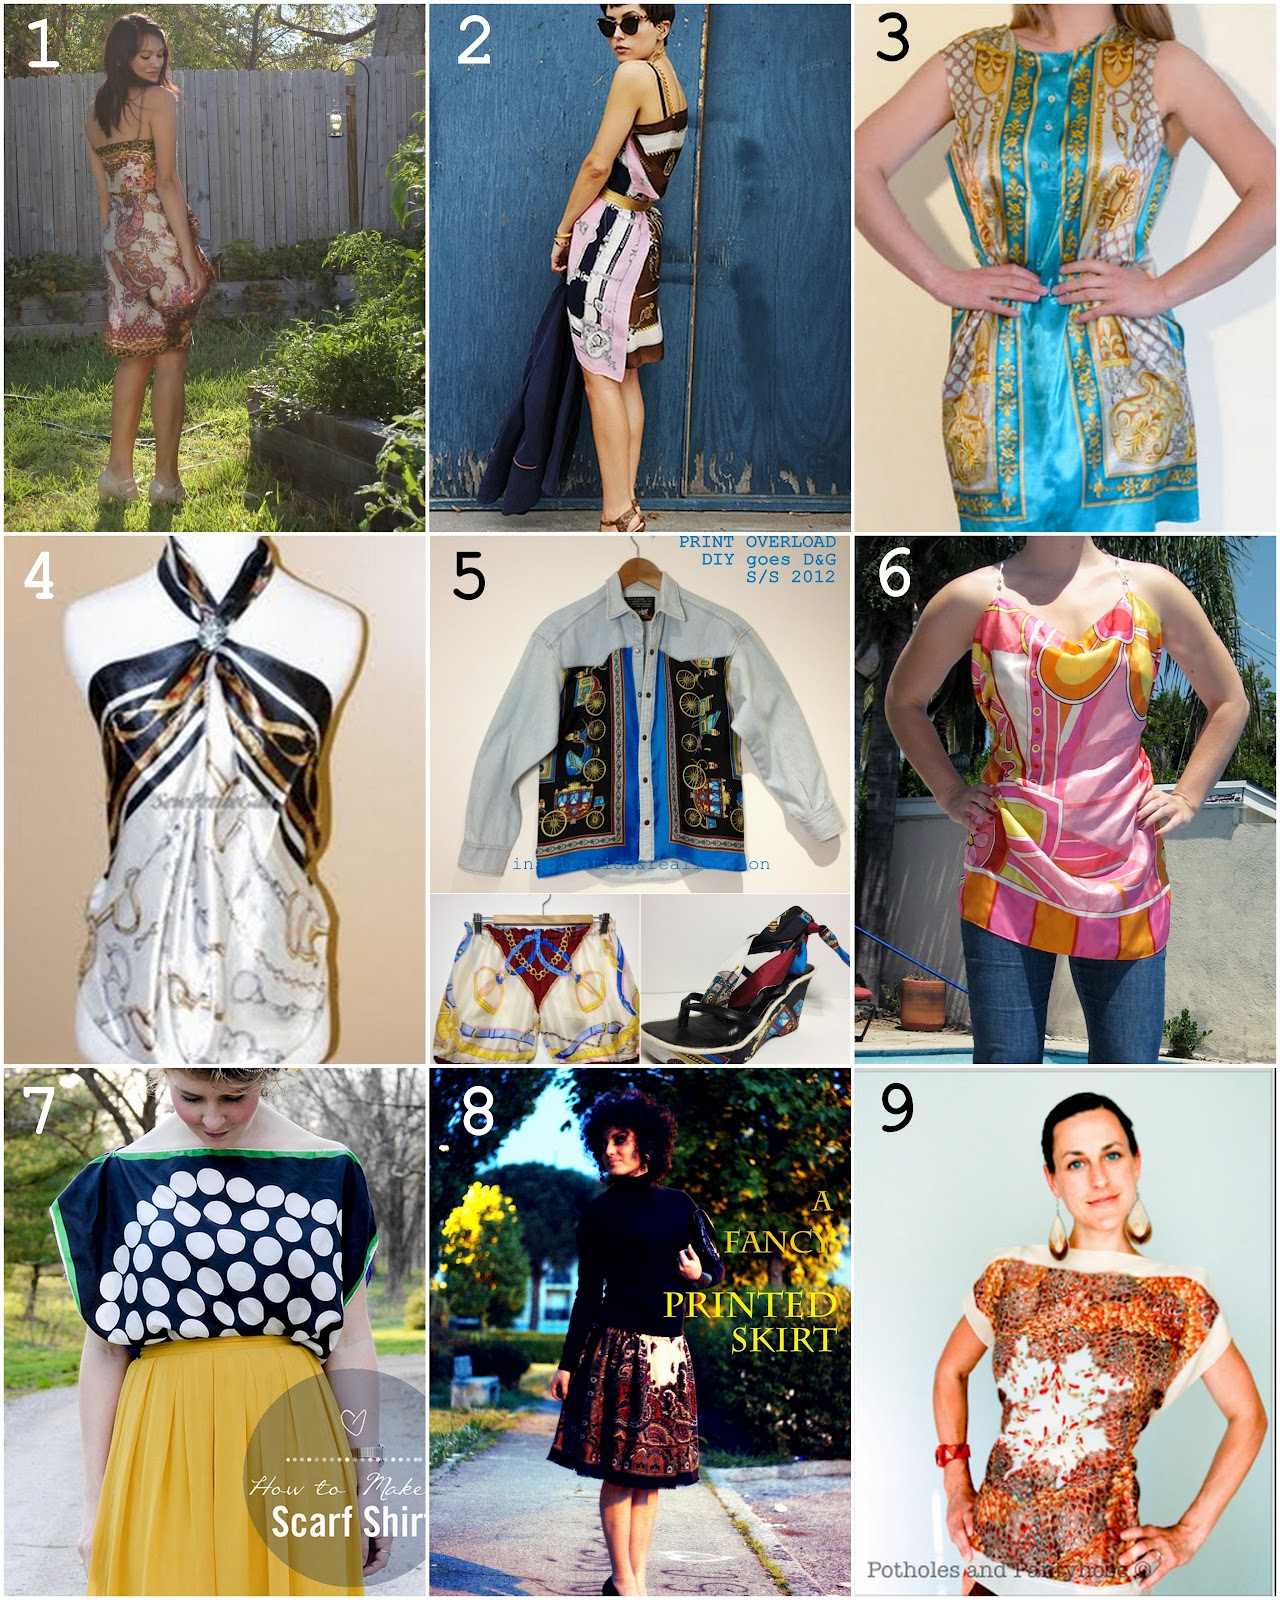 1 Scarf Dress Adored Austin 2 The Glamourai Diy Outsapop Link On Isn T There Anymore 3 A Matter Of Style